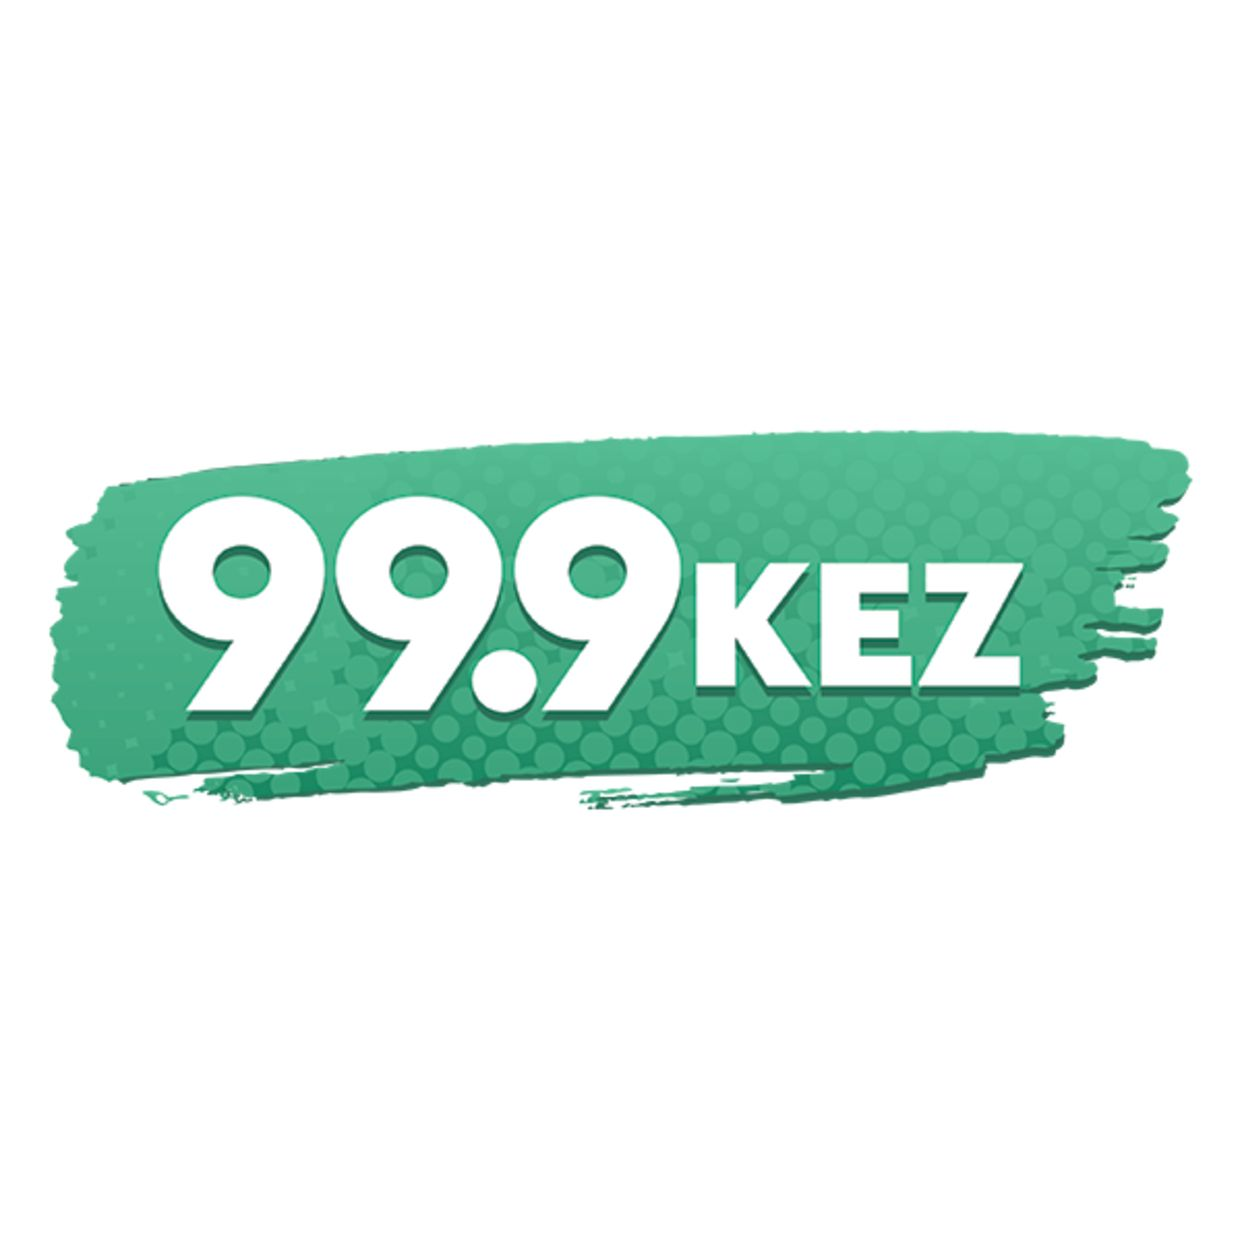 I\'m listening to 99.9 KEZ Phoenix, The Valley\'s Home for Christmas ...